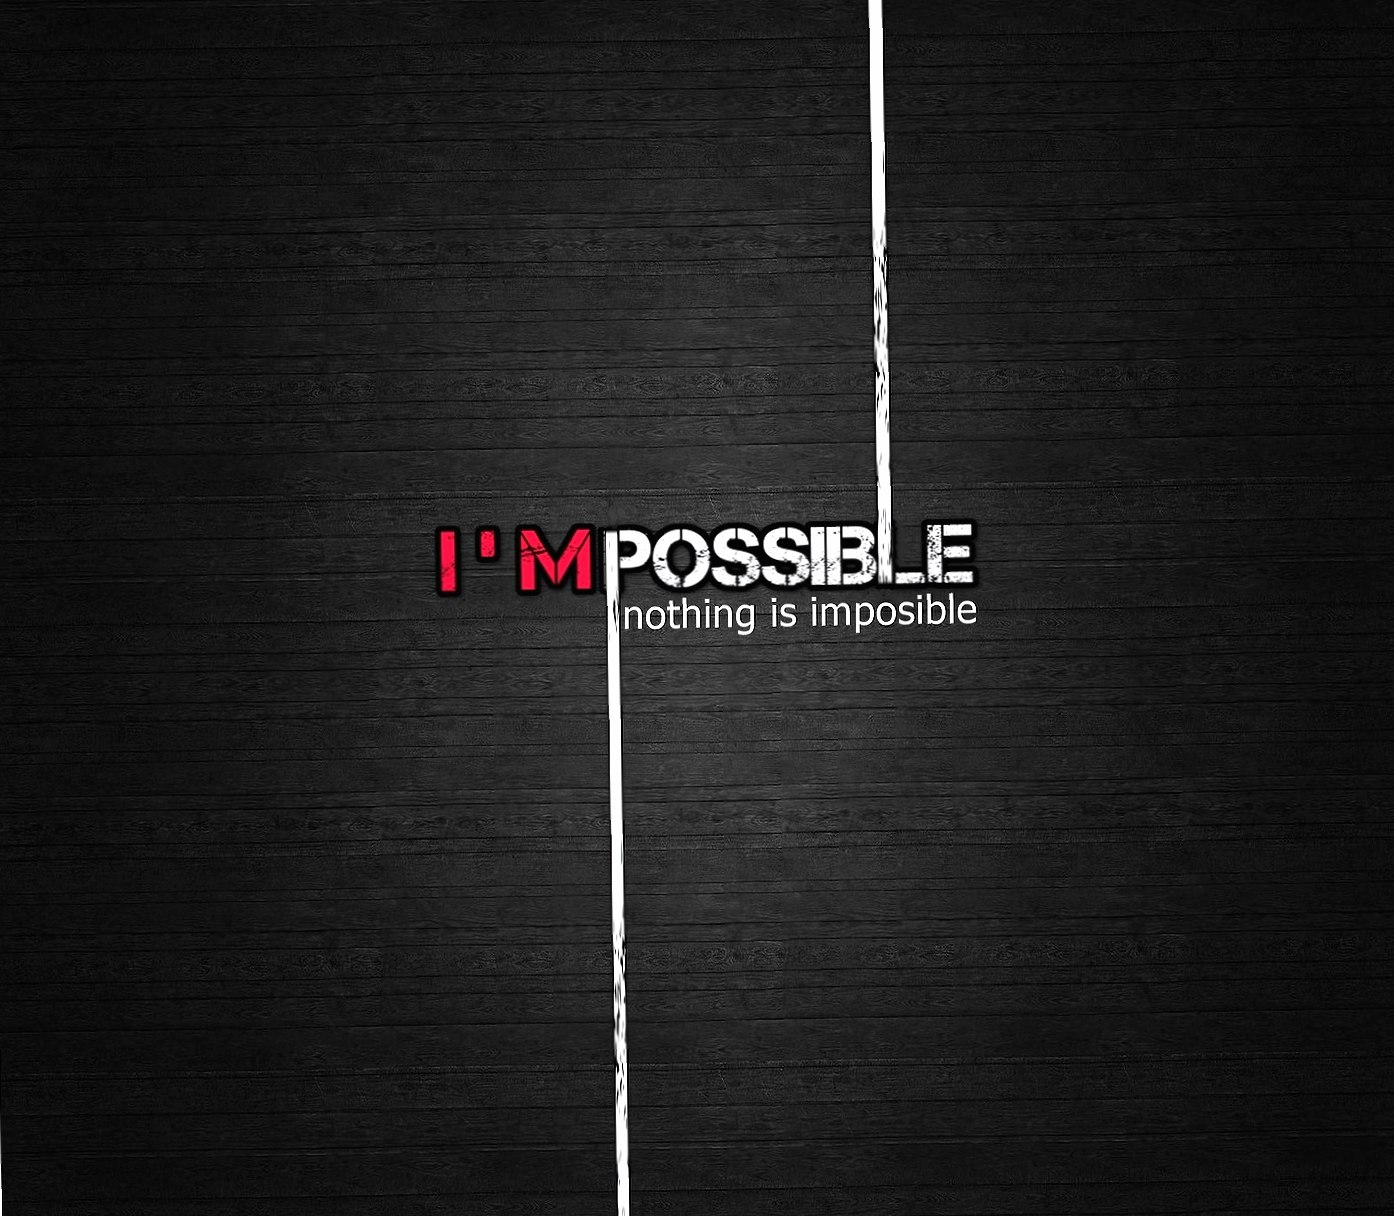 Impossible wallpapers HD quality